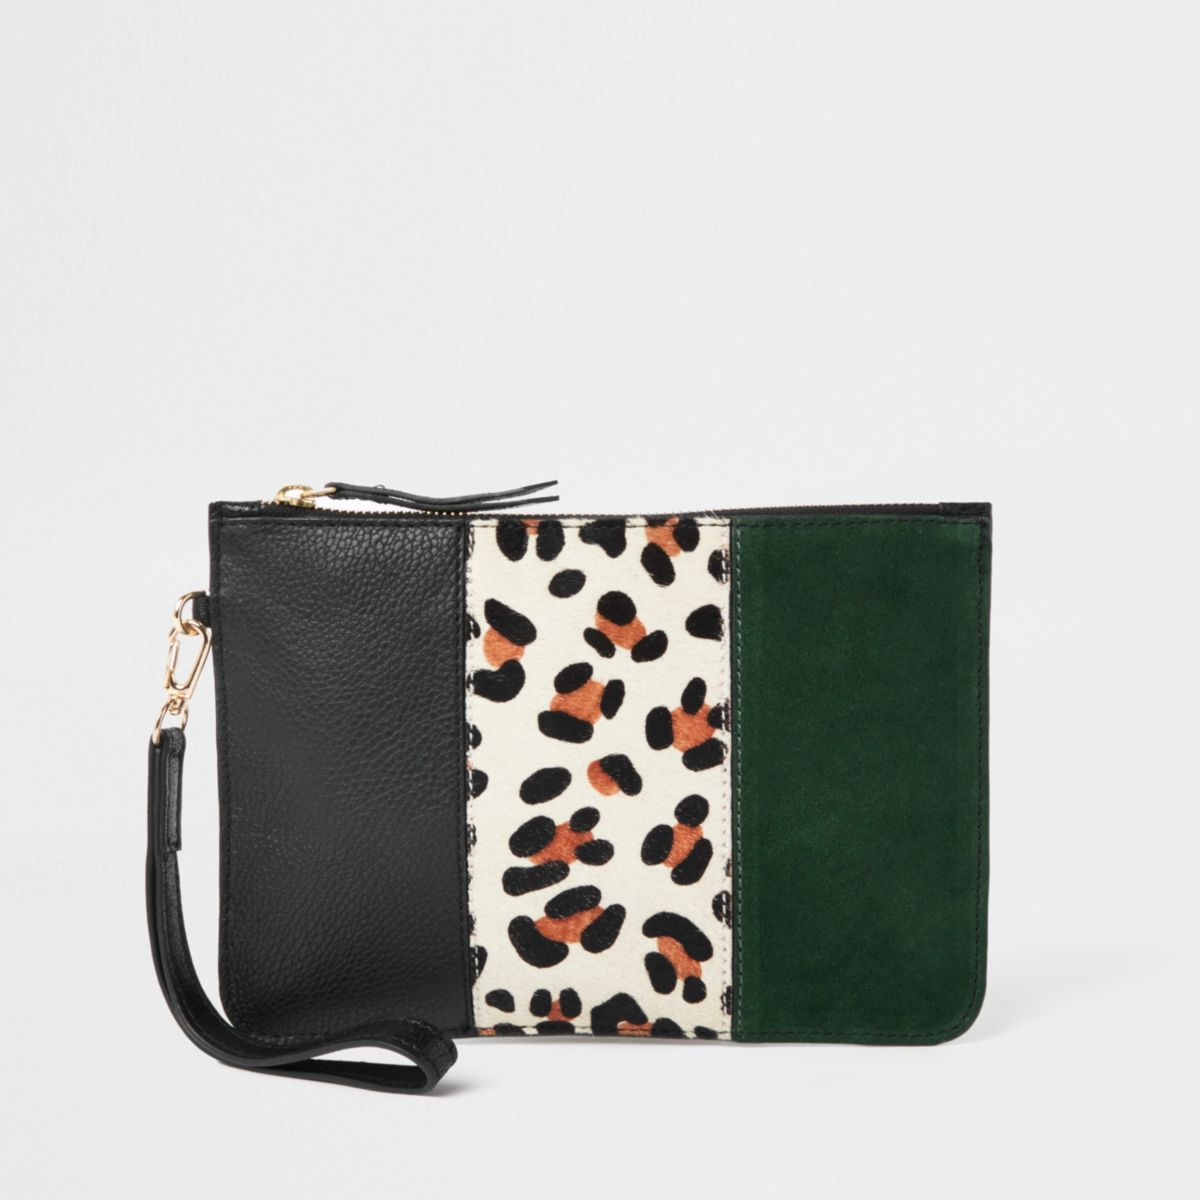 Beige leather panel pouch clutch bag